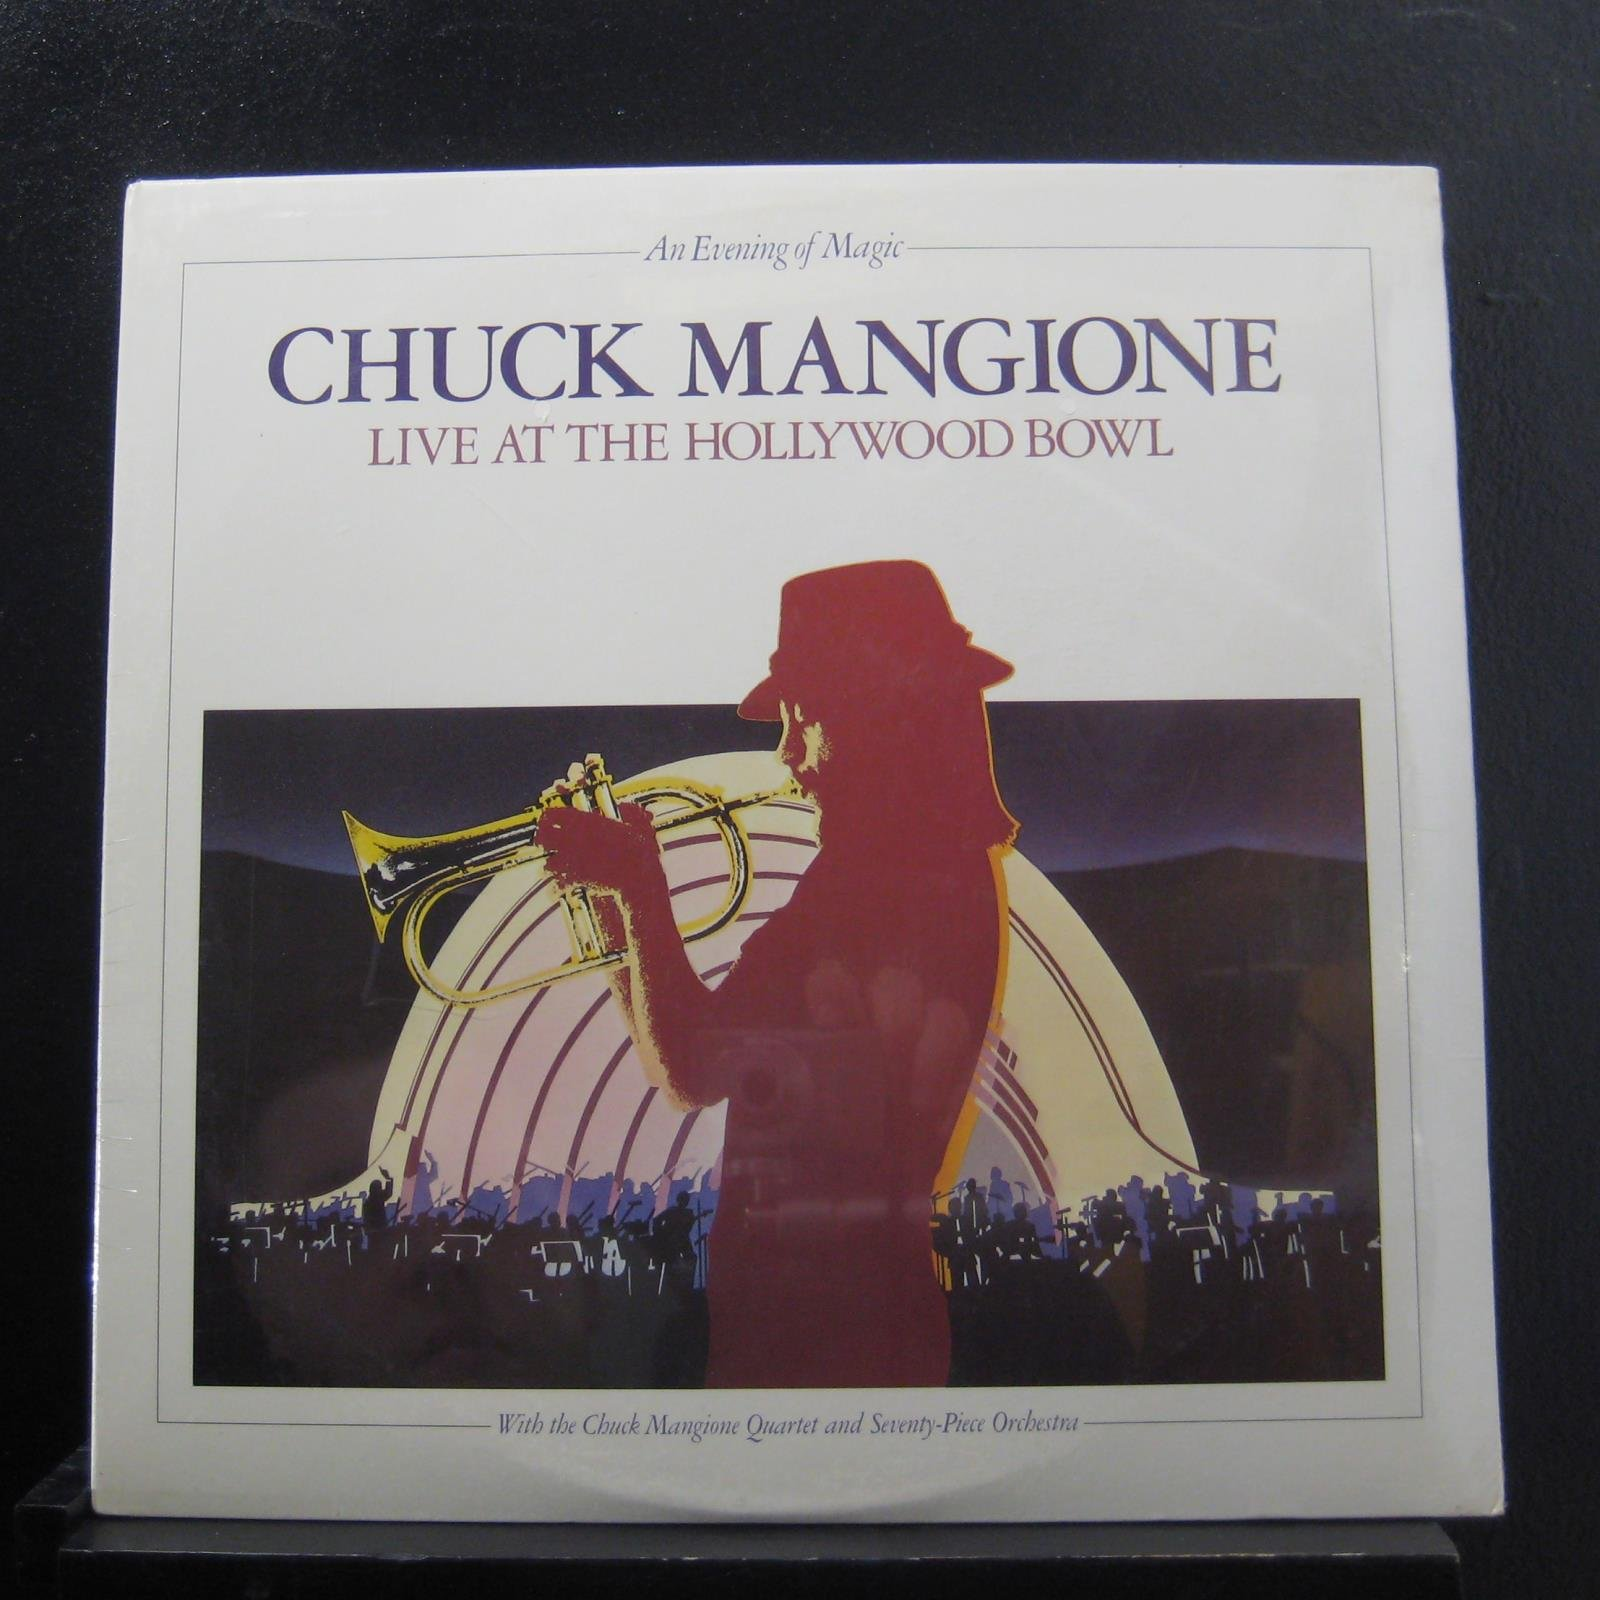 Chuck Mangione: Live At The Hollywood Bowl [2 LP Records] by A&M